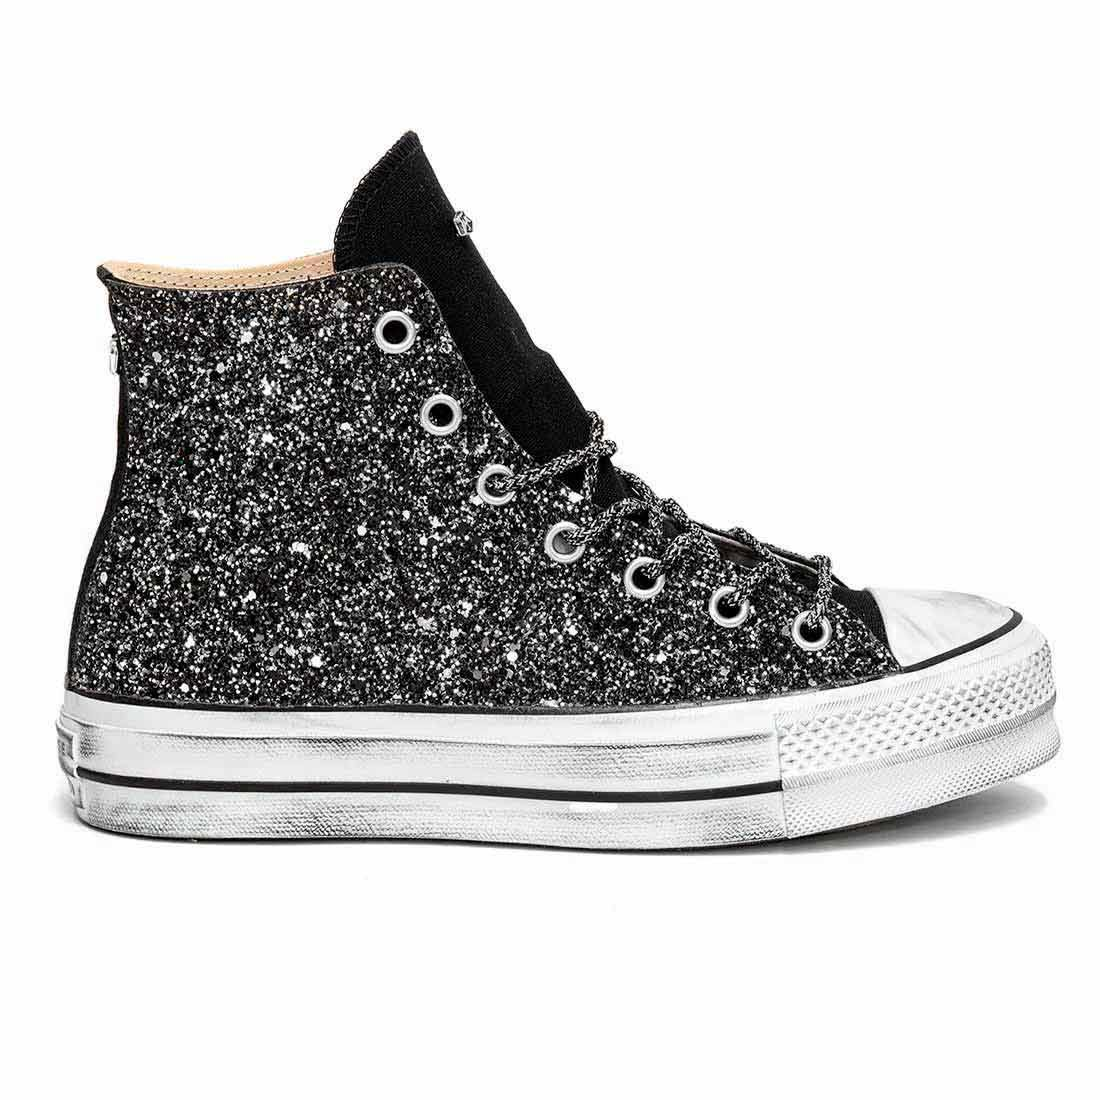 2all star converse alte platform